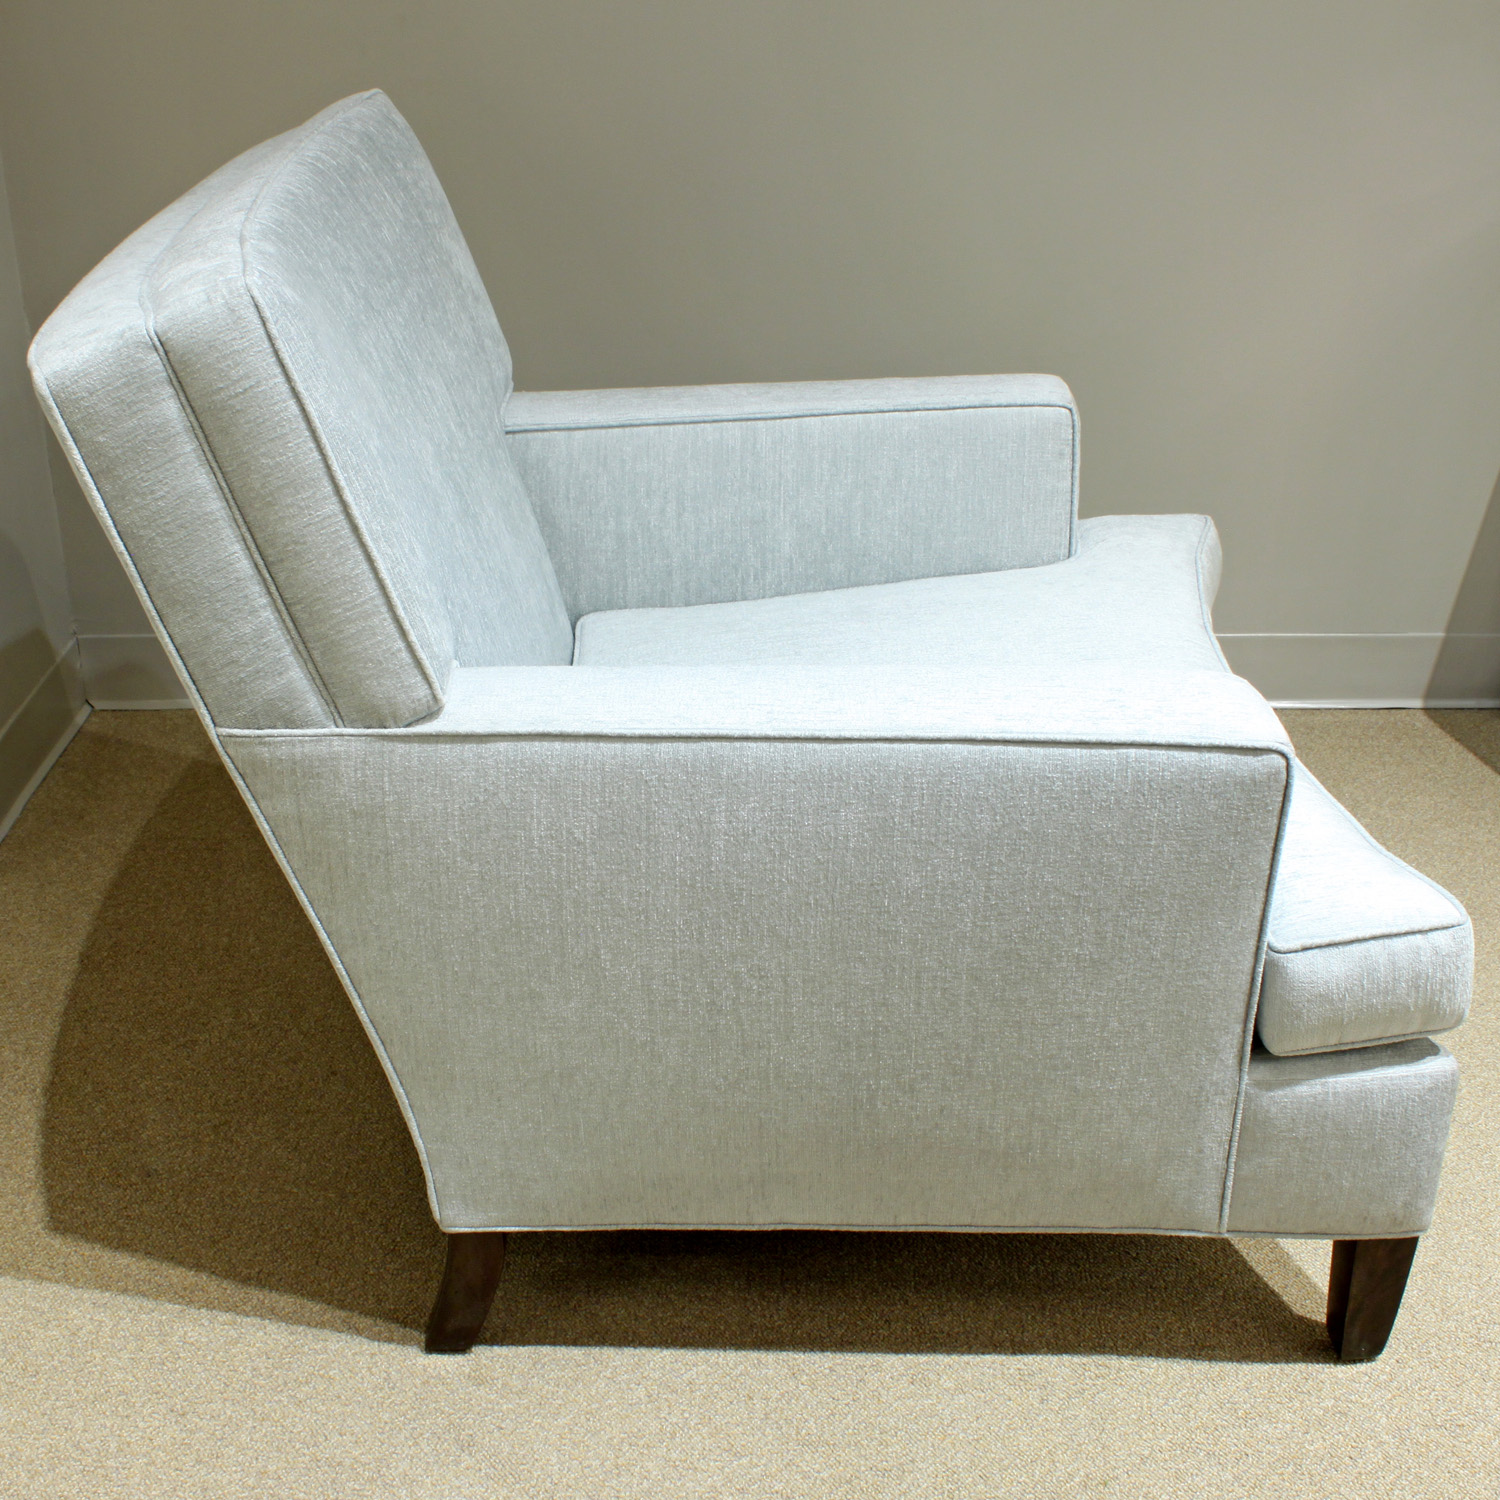 40's 150 curved fronts wood legs clubchairs60 hires detail 4.jpg